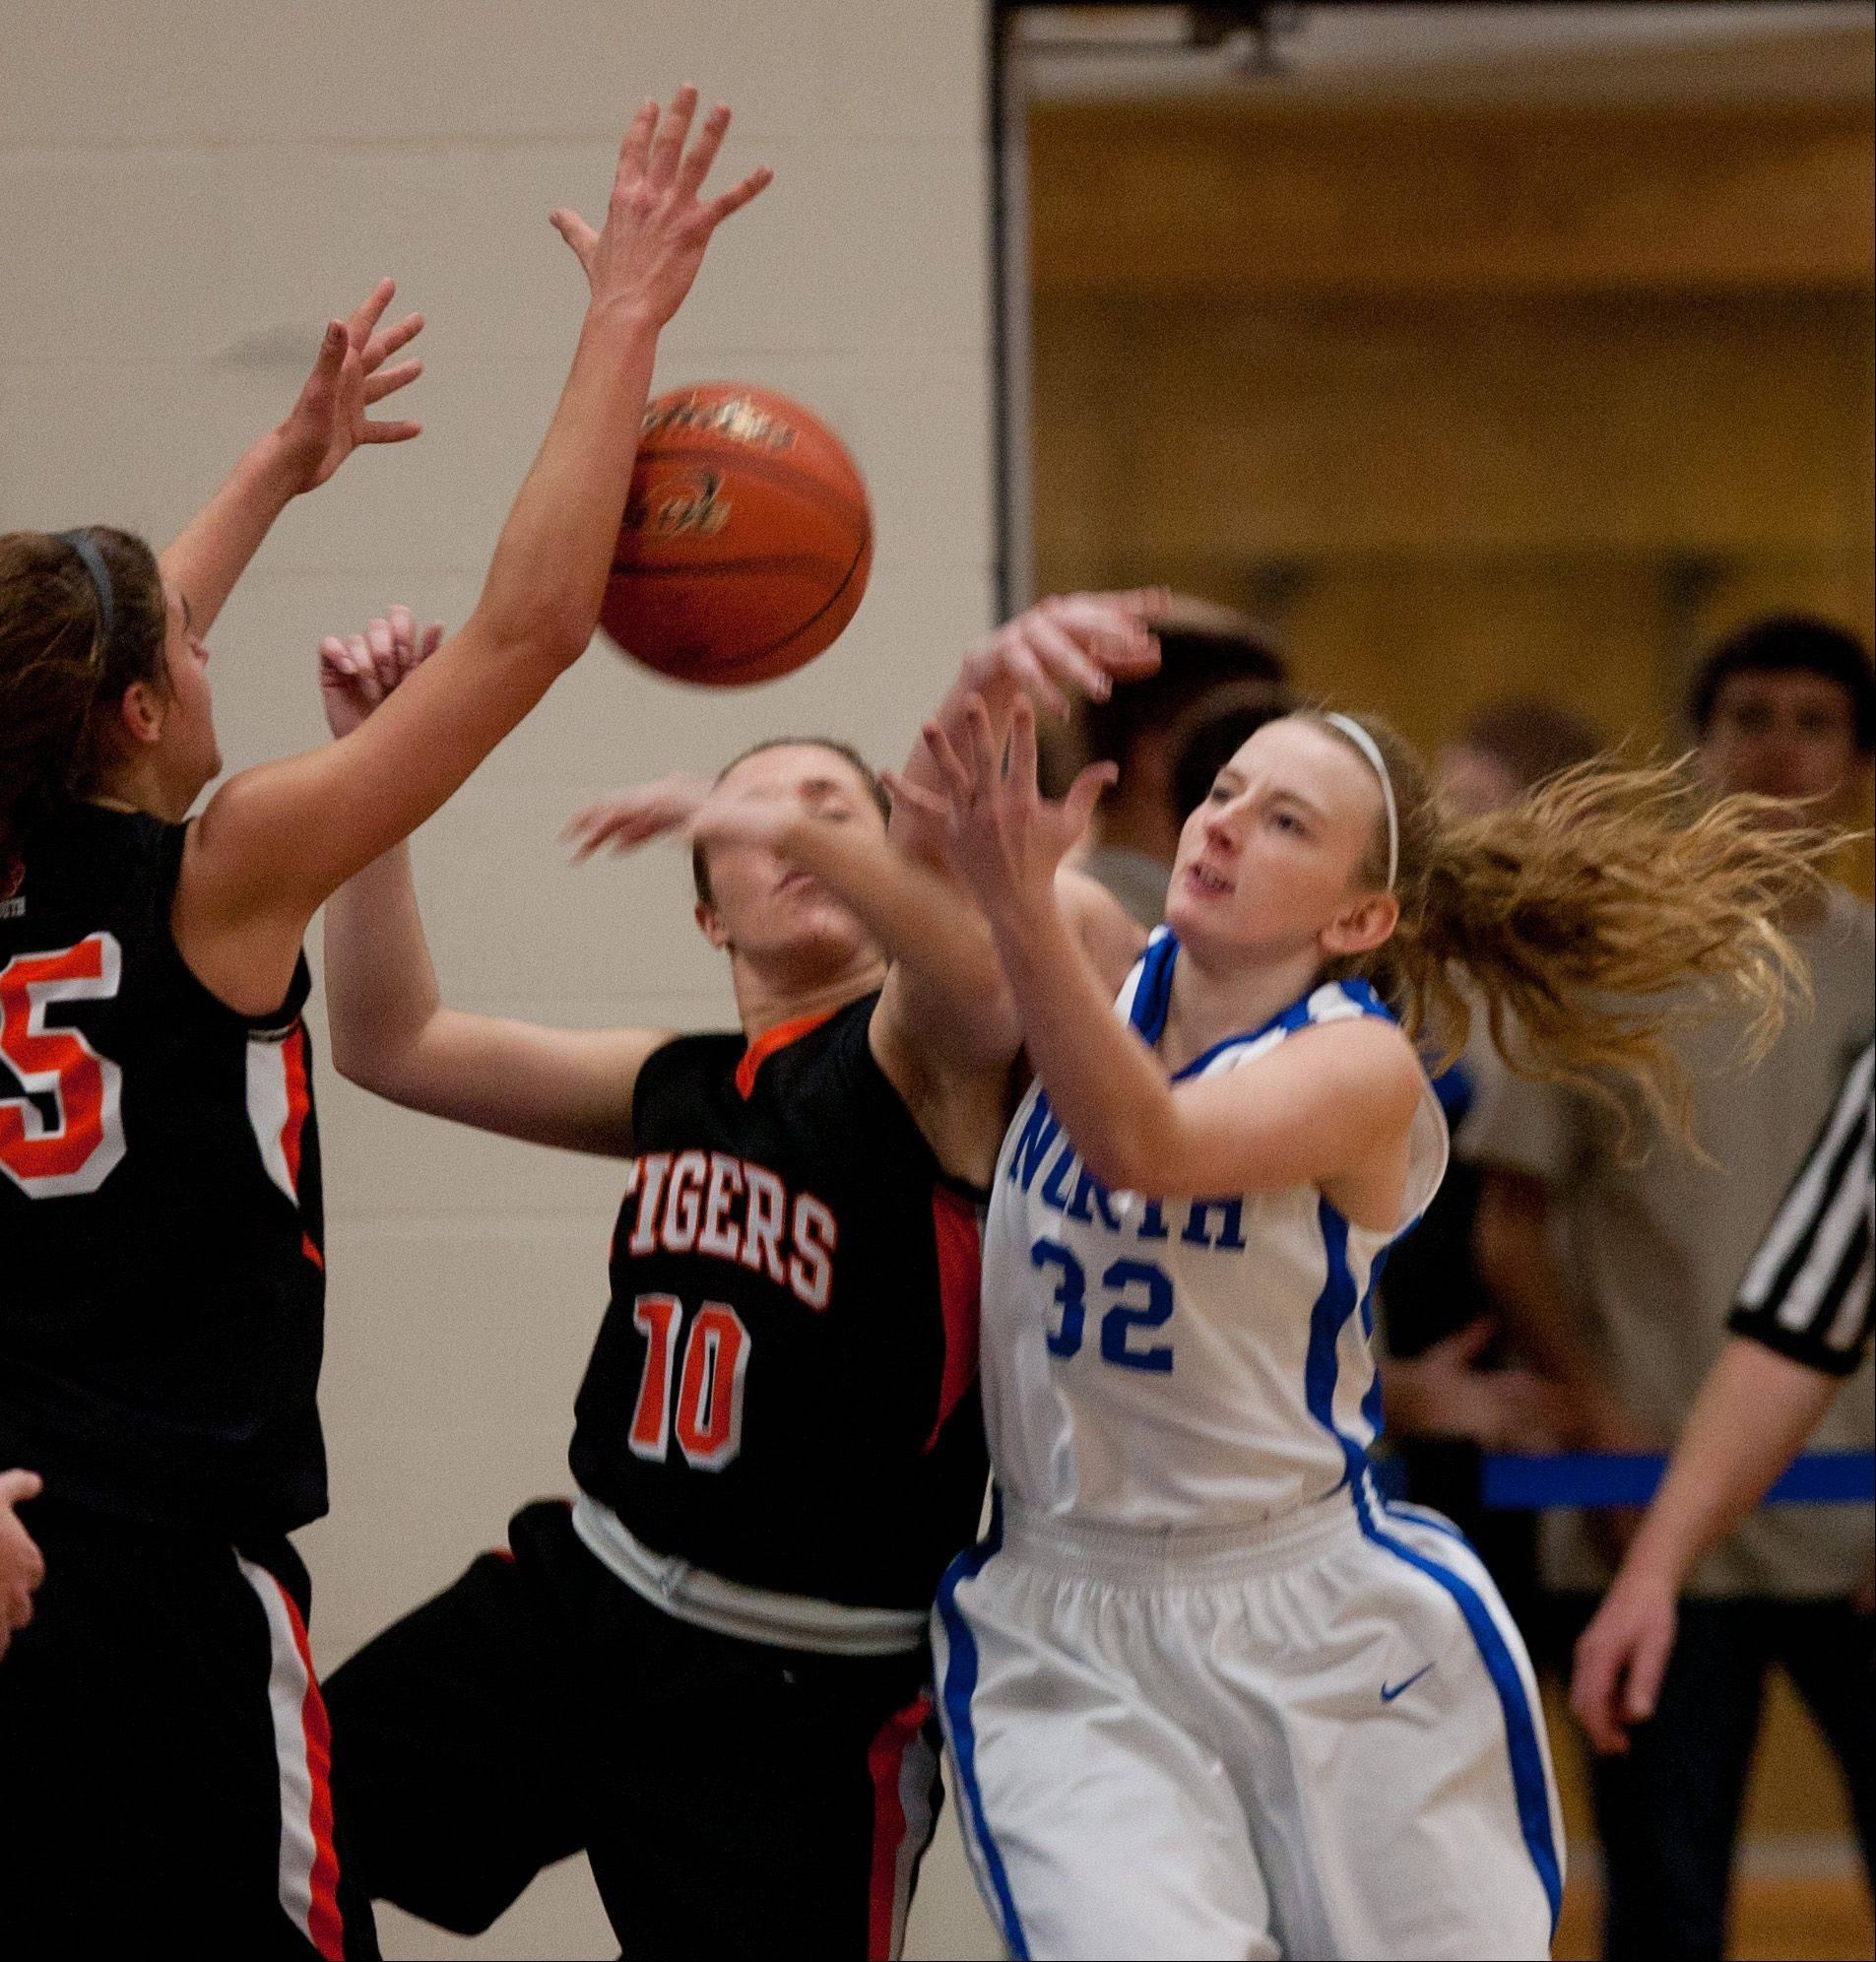 Images: Wheaton North vs. Wheaton Warrenville South girls basketball